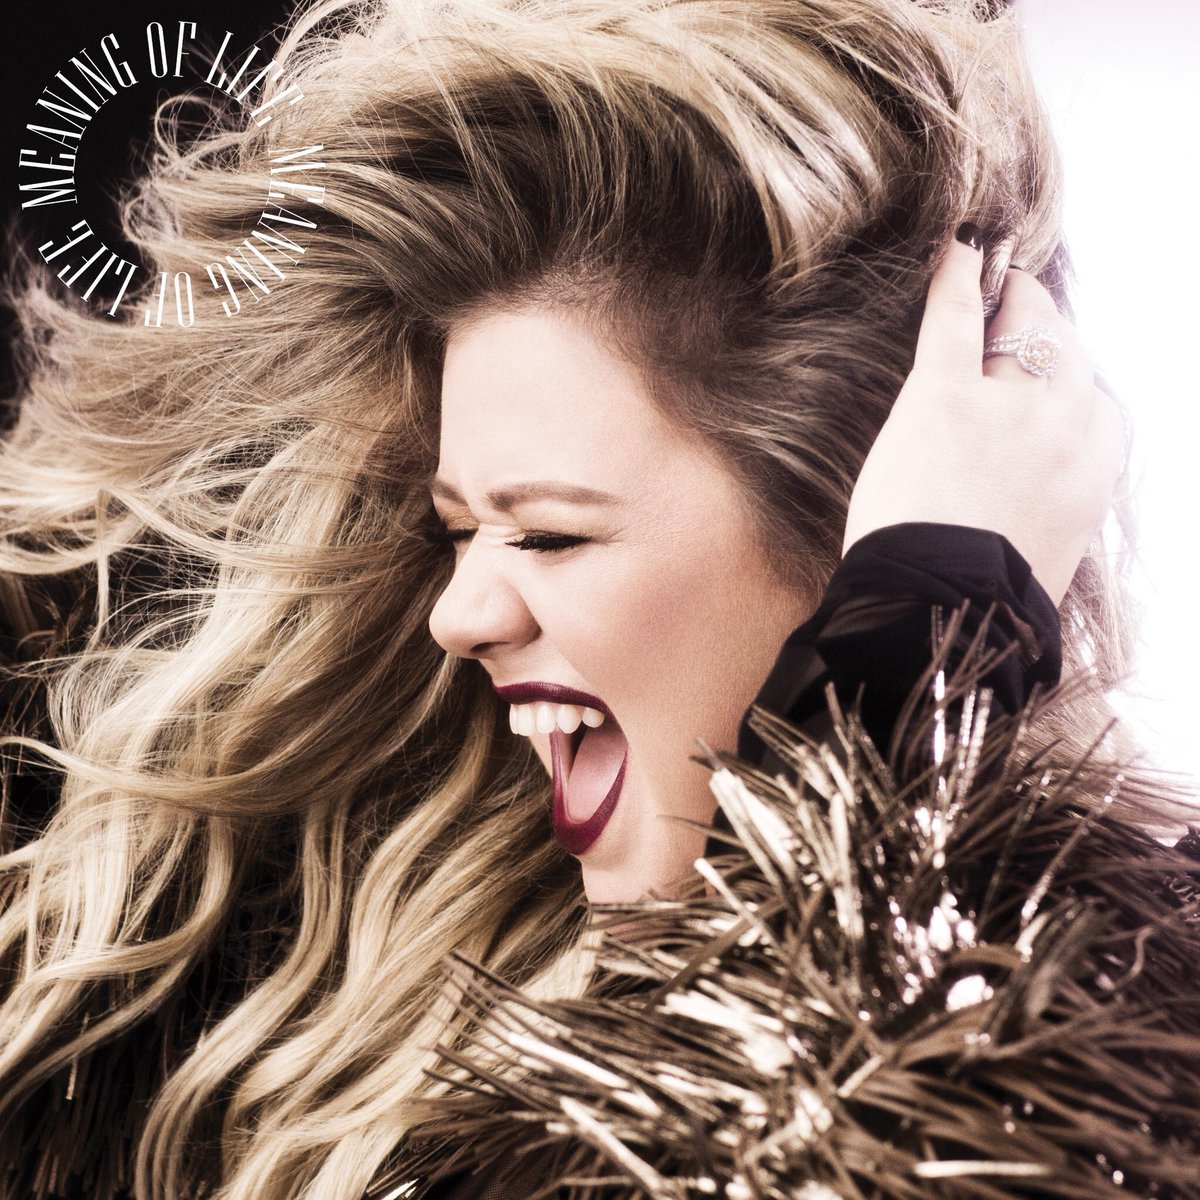 Kelly Clarkson makes her Atlantic Records debut!